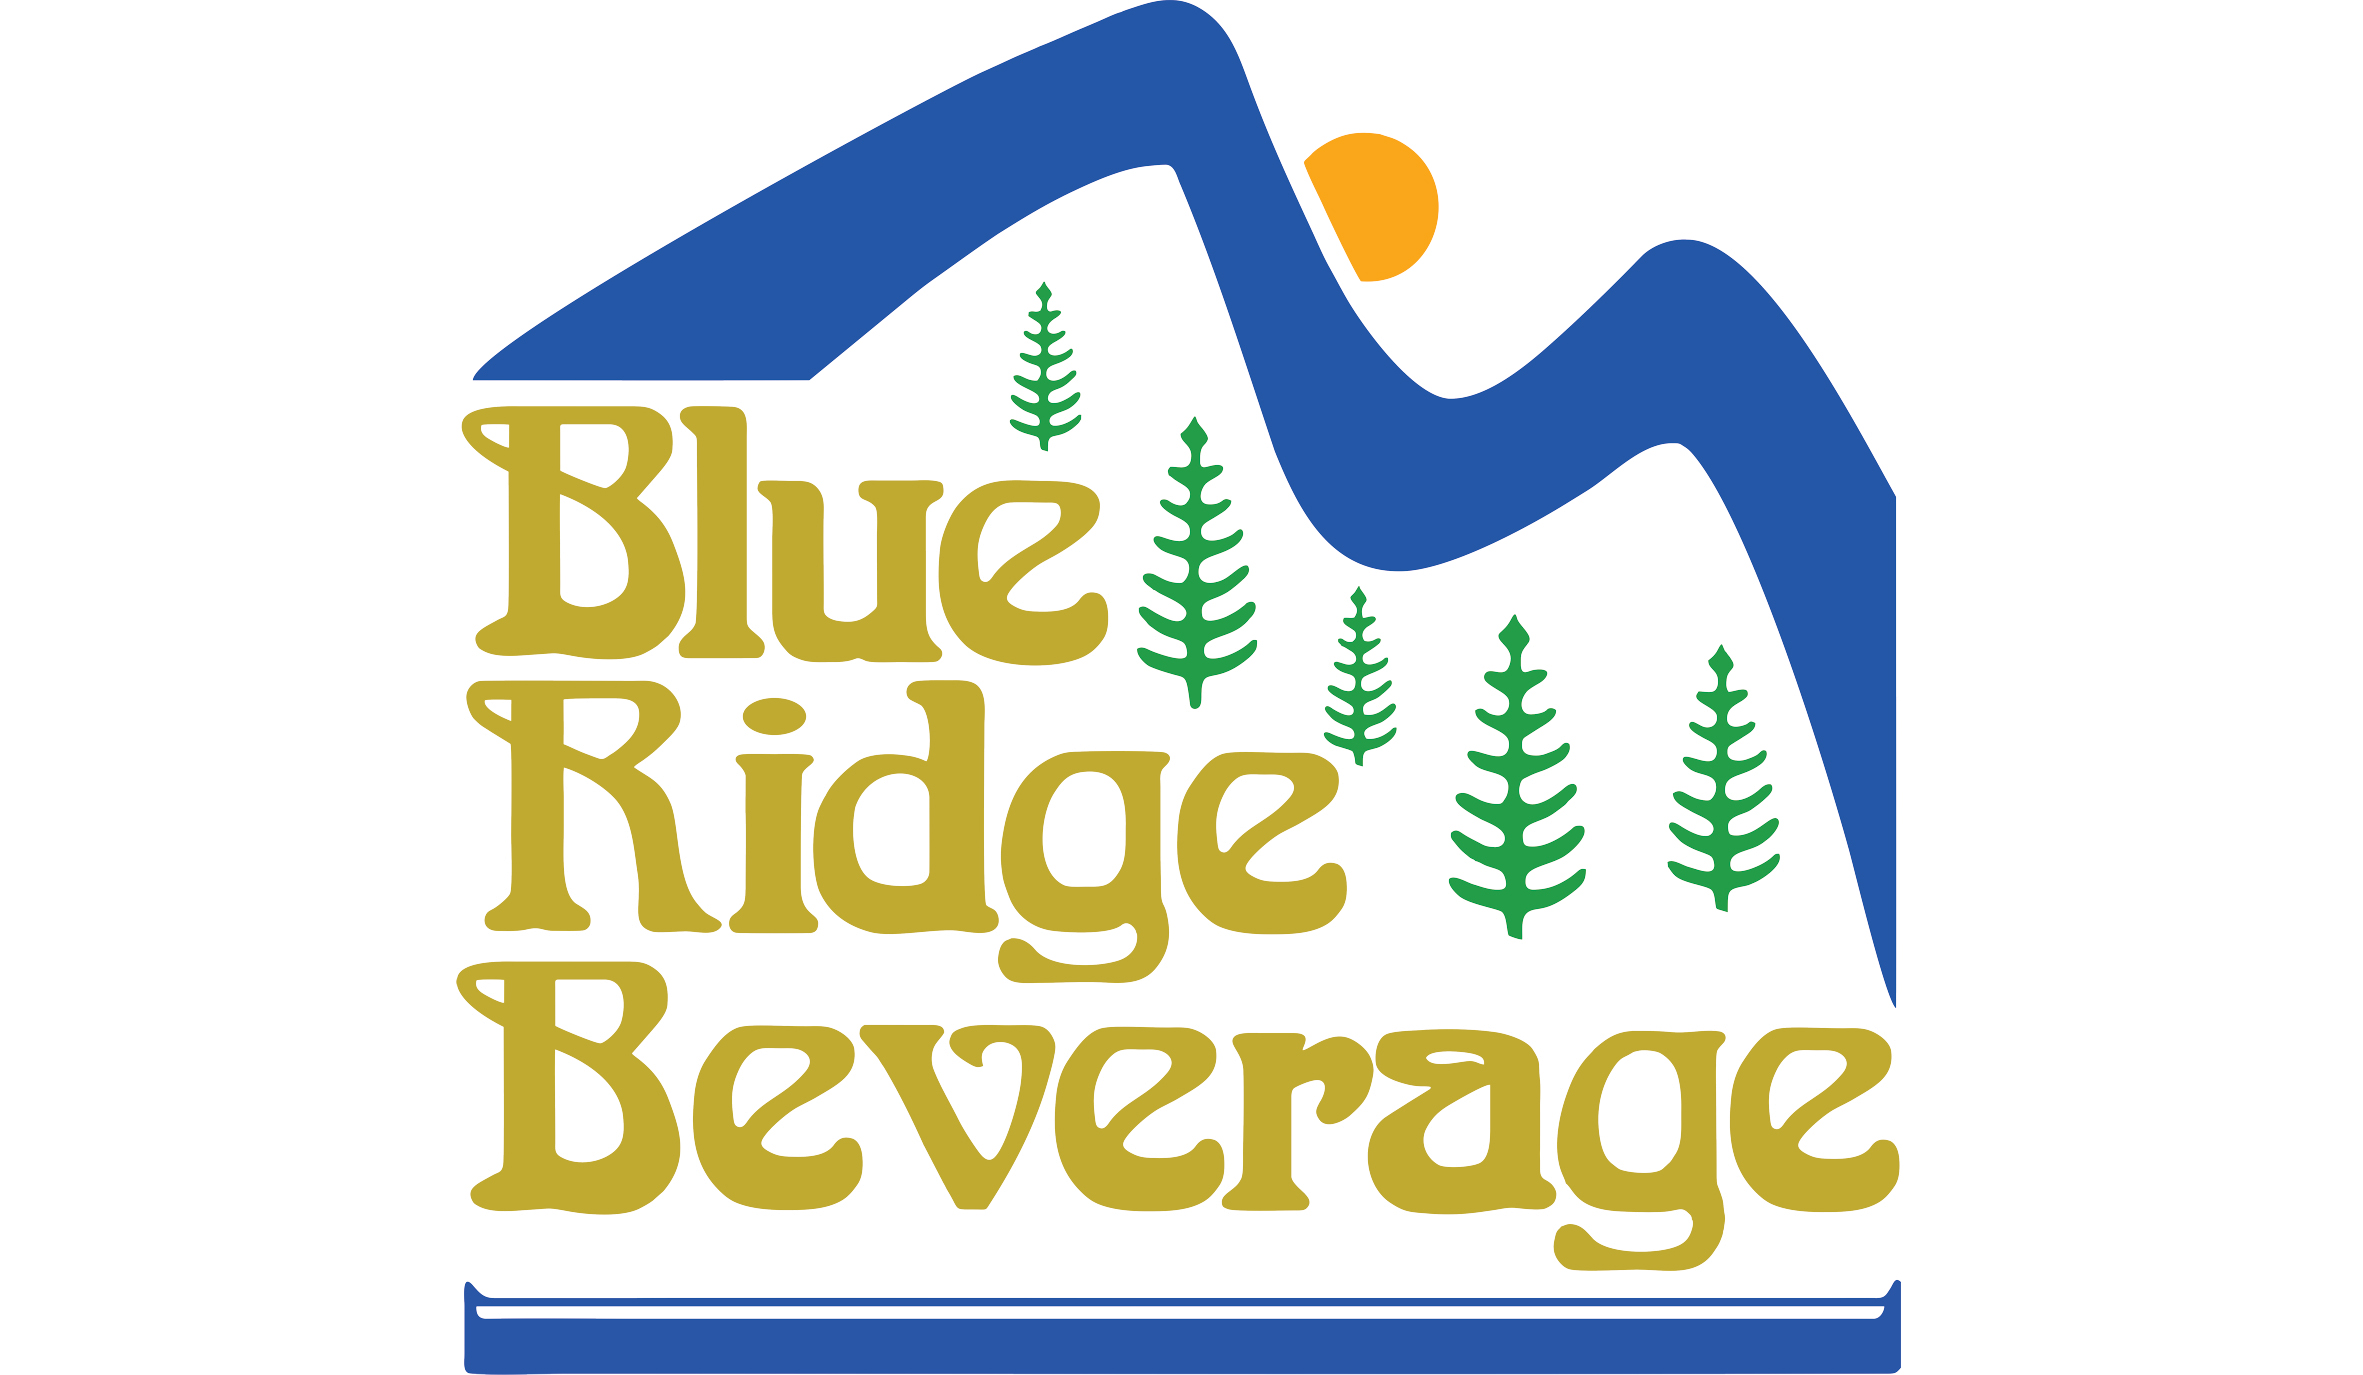 Blue-Ridge-Beverage-logo.jpg